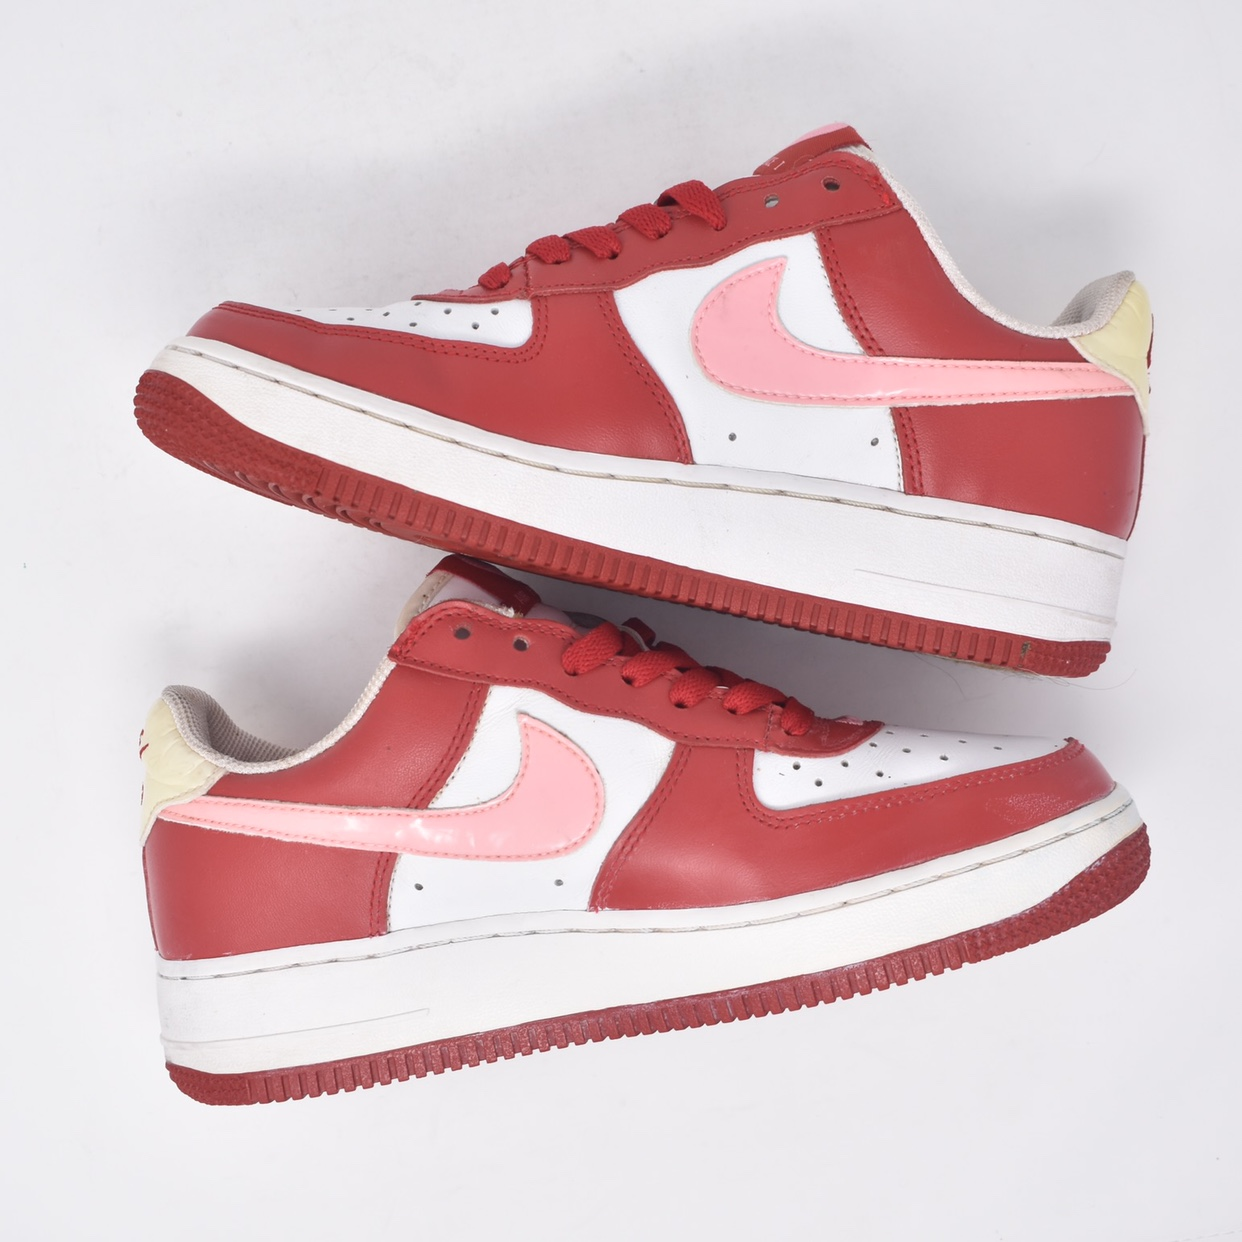 air force 1 valentine's day 2005